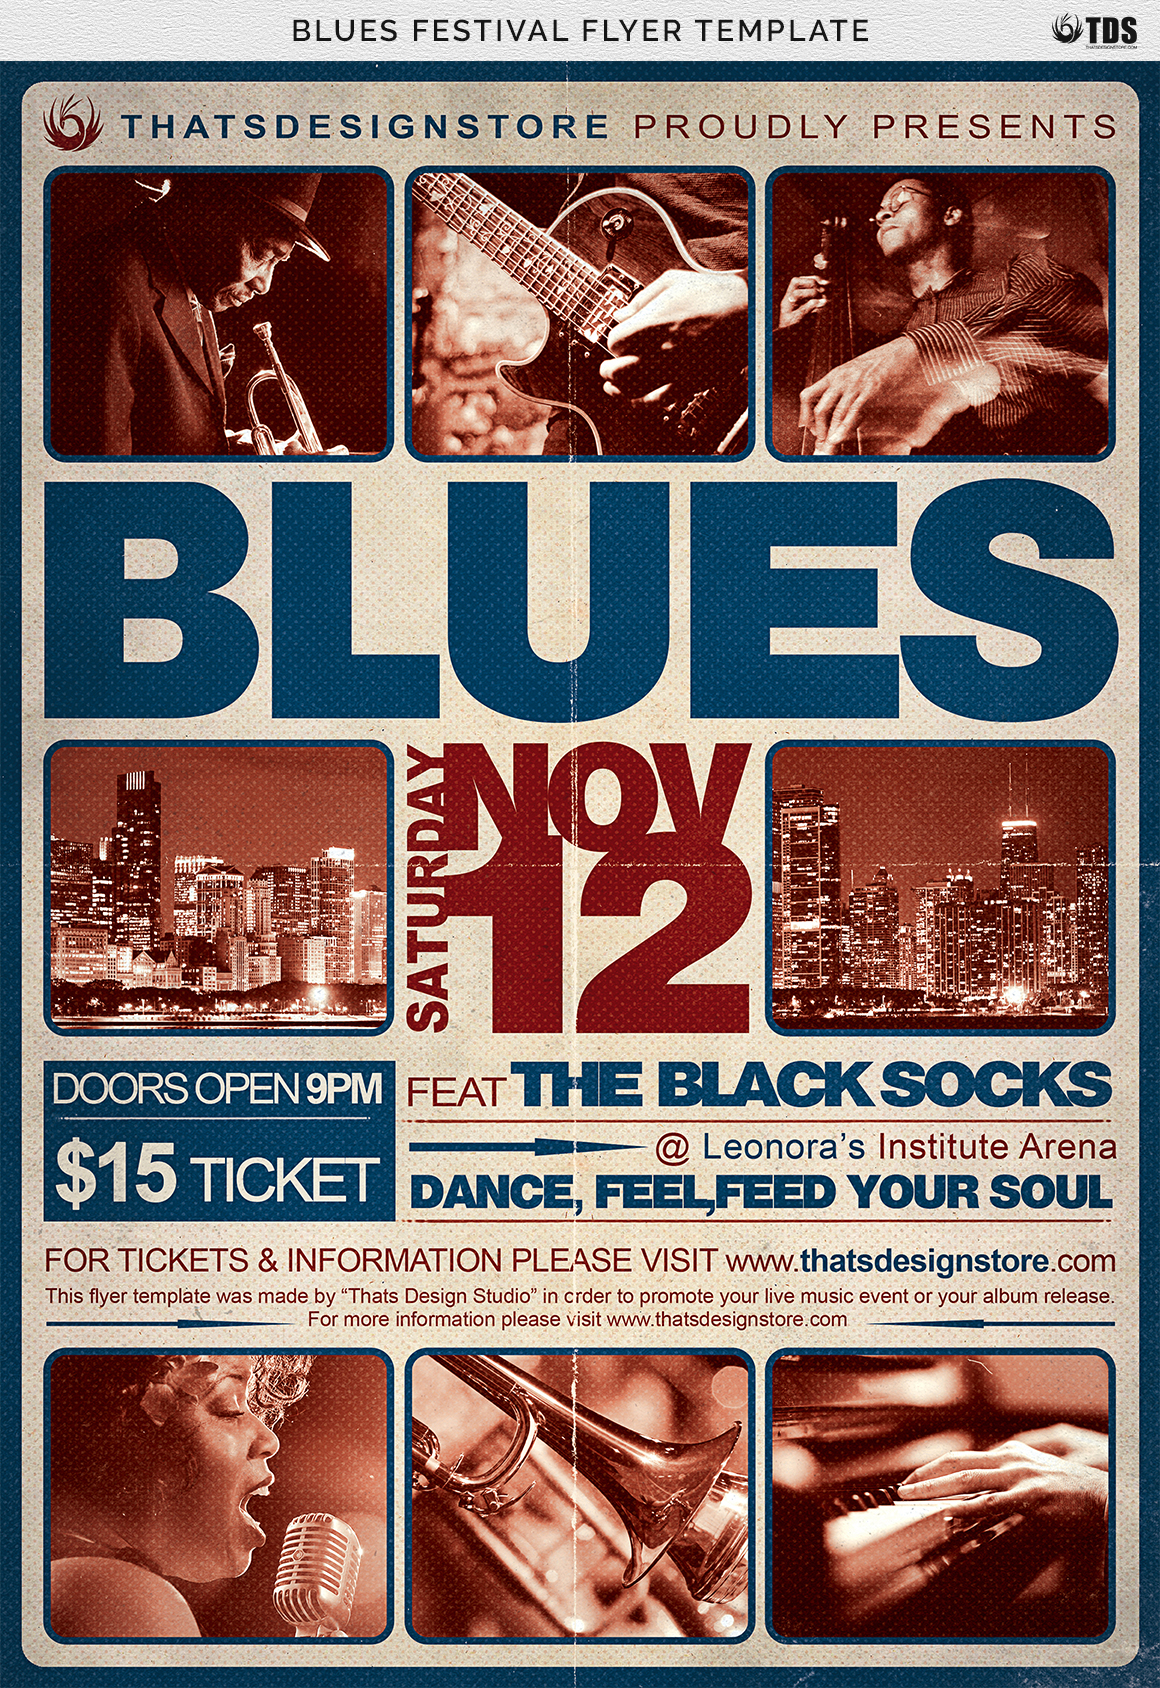 Blues Festival Flyer Template V2 example image 8